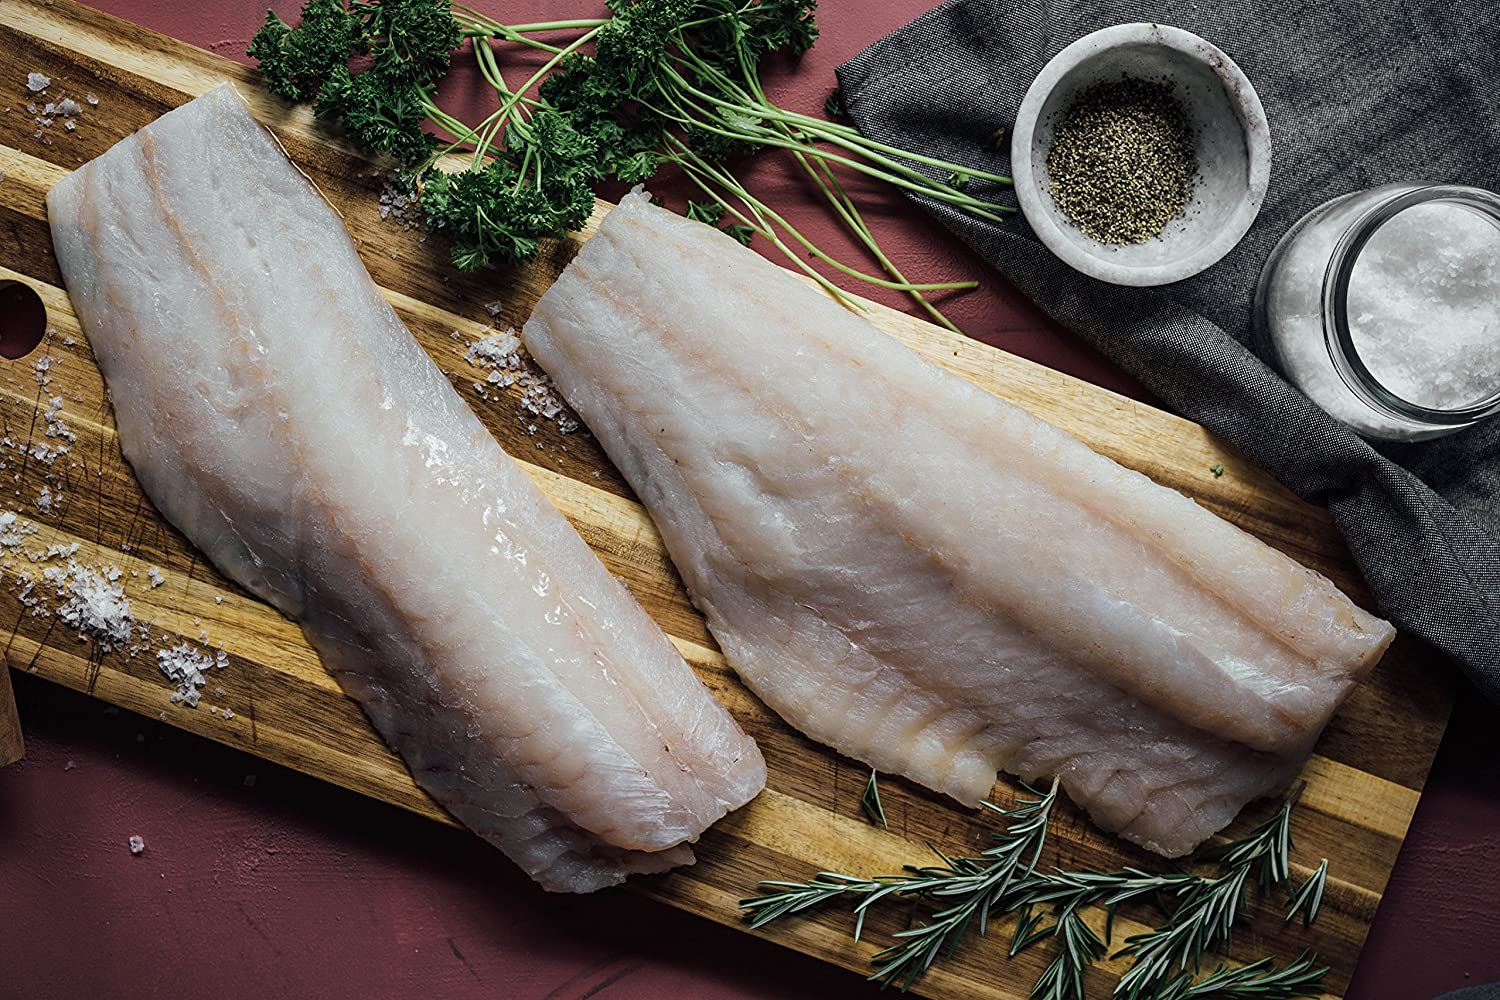 Broiled Whiting Fish Recipes